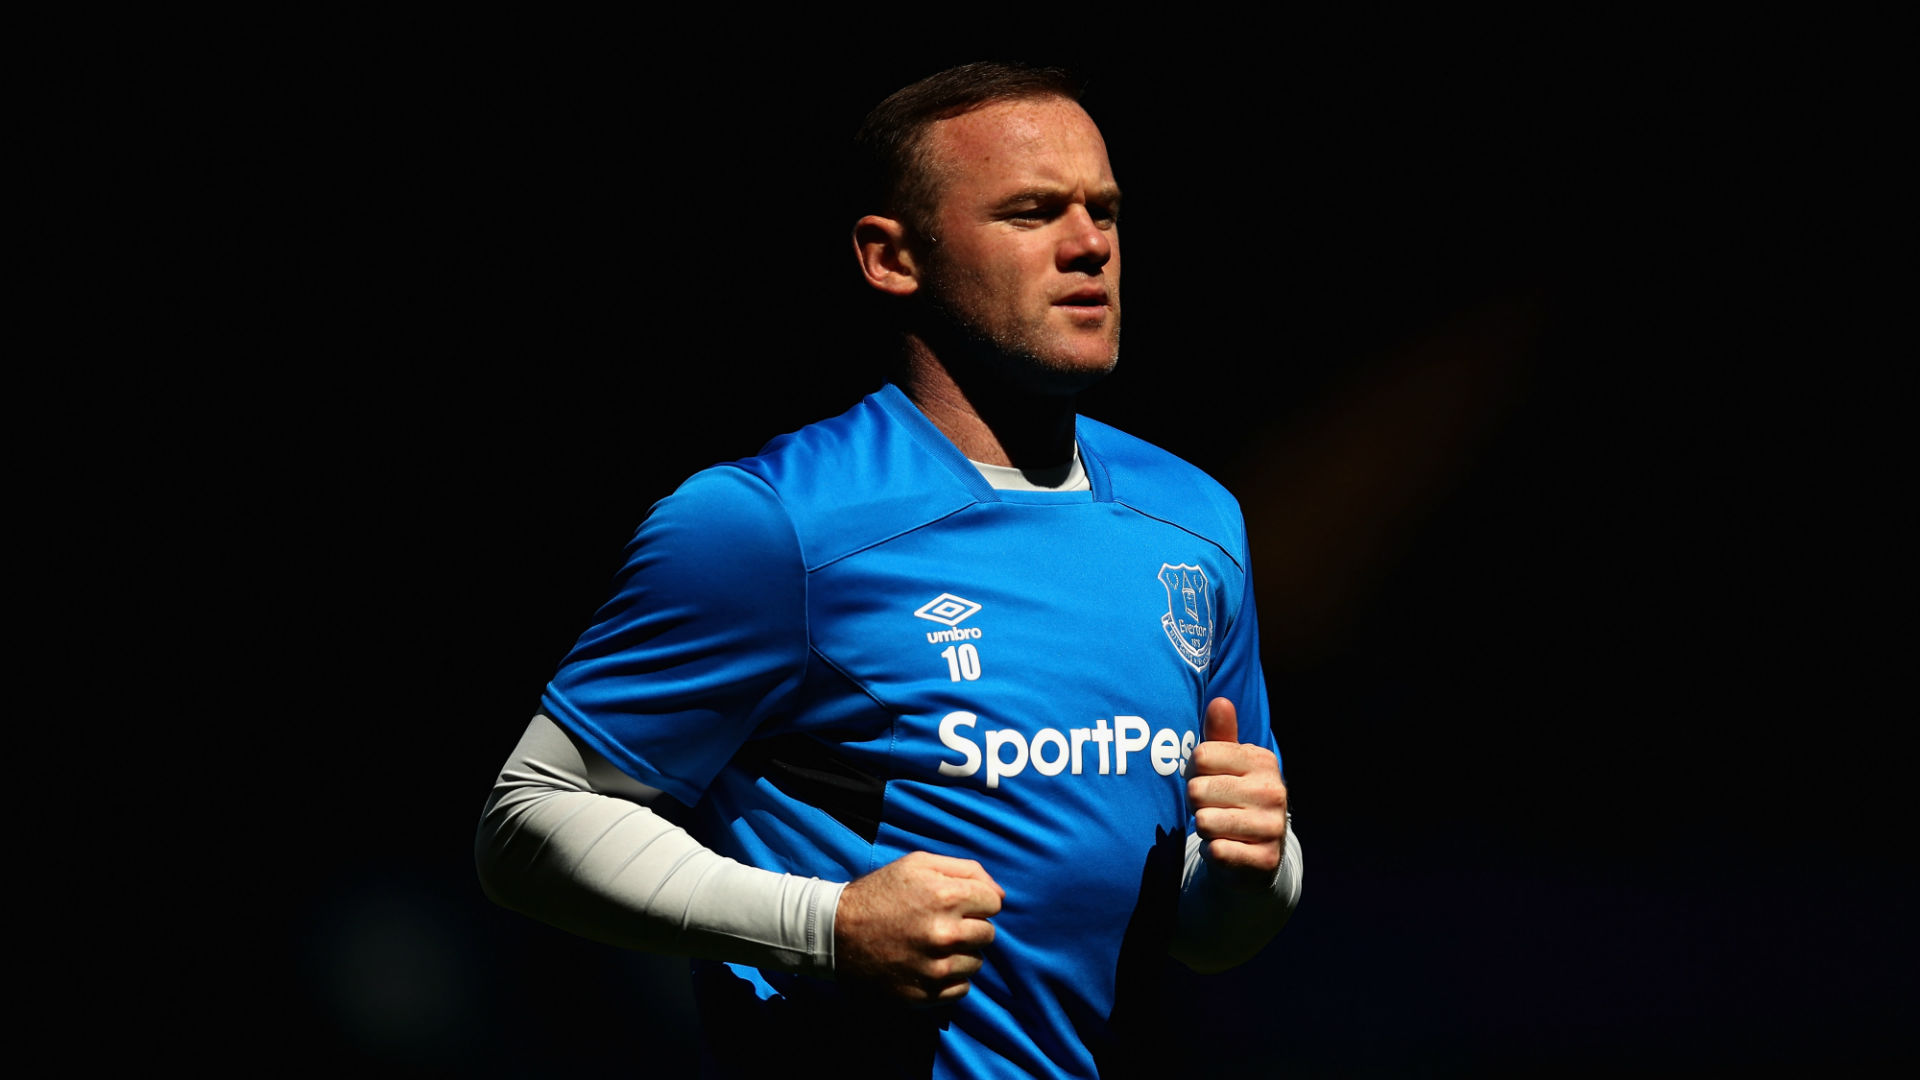 Wayne Rooney's marriage is reportedly on the rocks